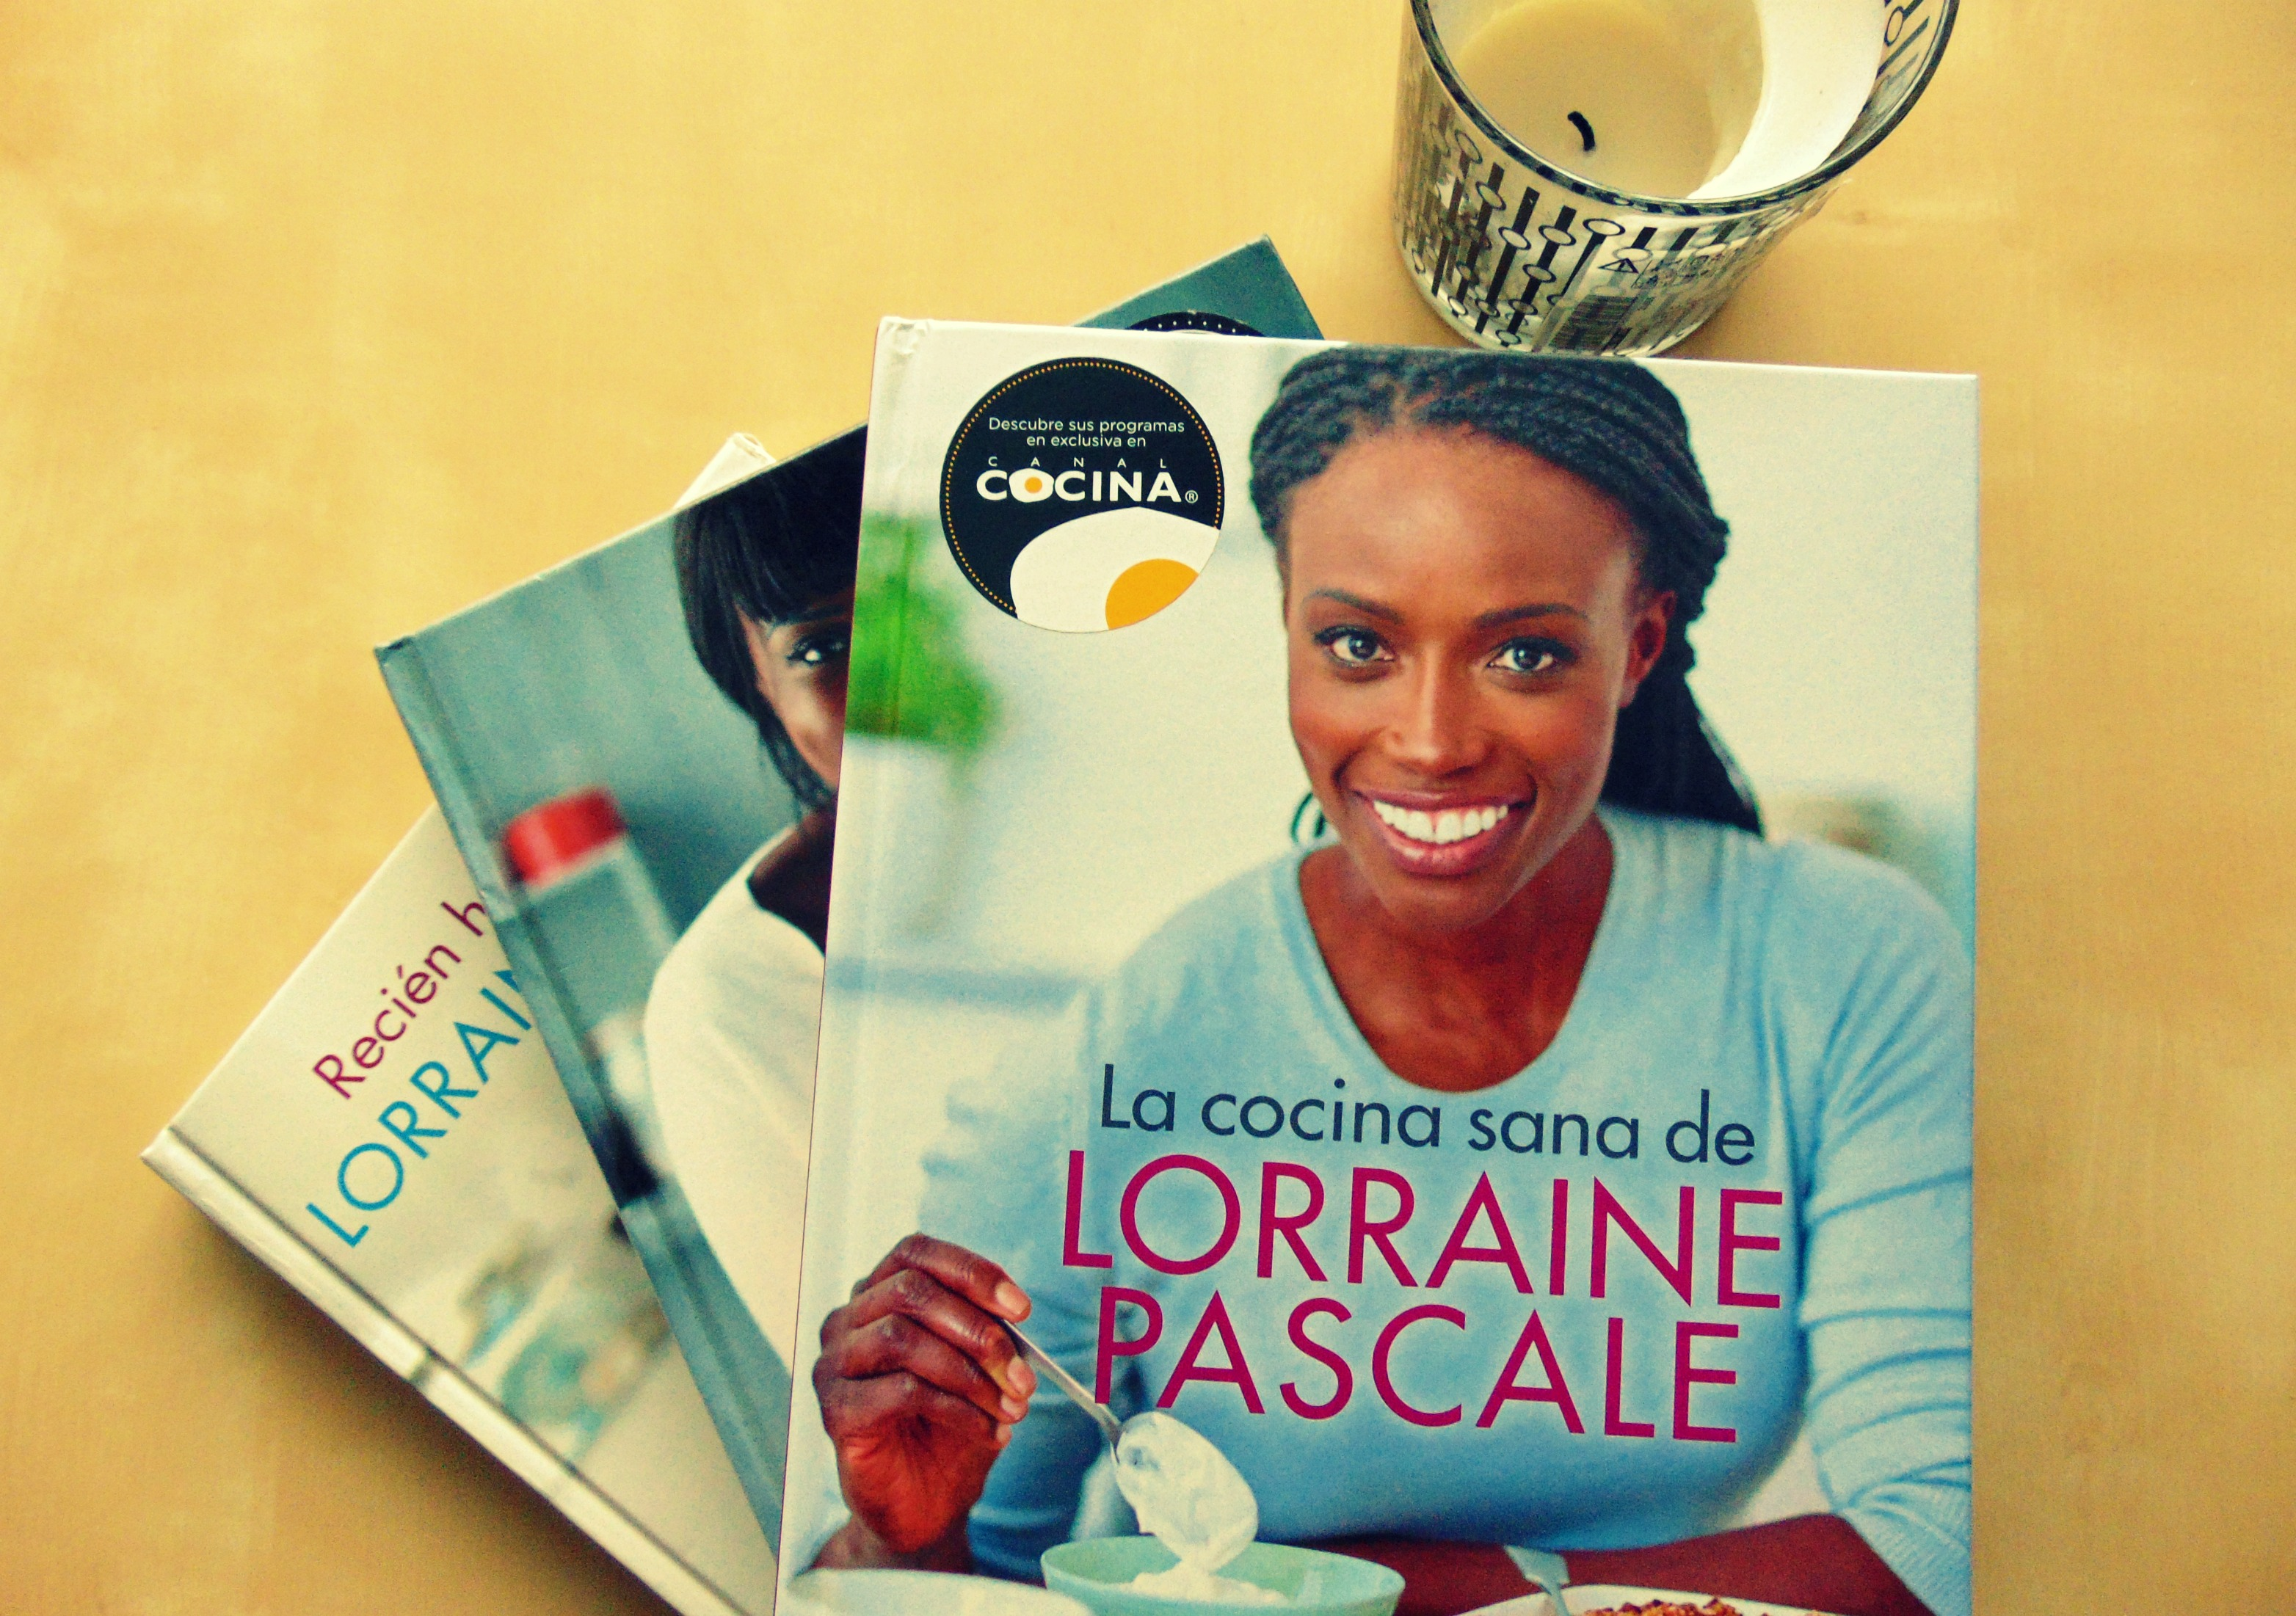 Cocina Lorraine Pascale La Cocina Sana De Lorraine Pascale Readings In The North